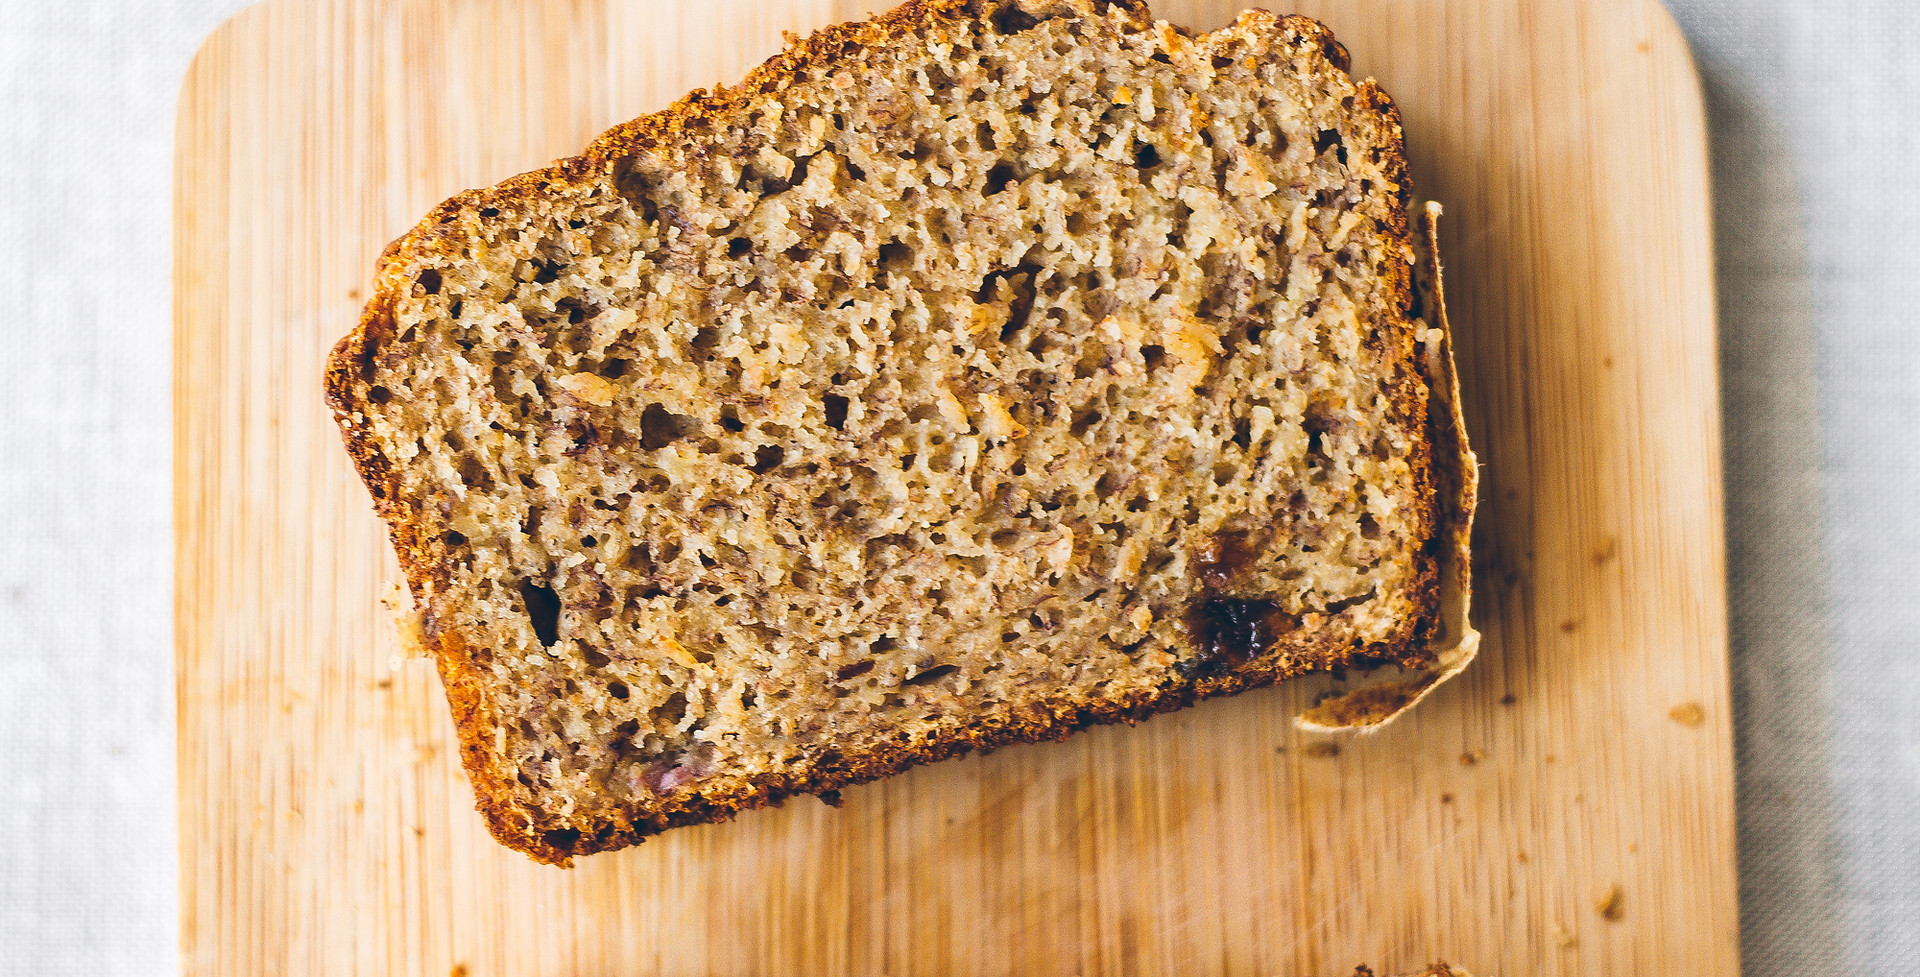 Vegan banana bread w/ raisins, rum, and orange